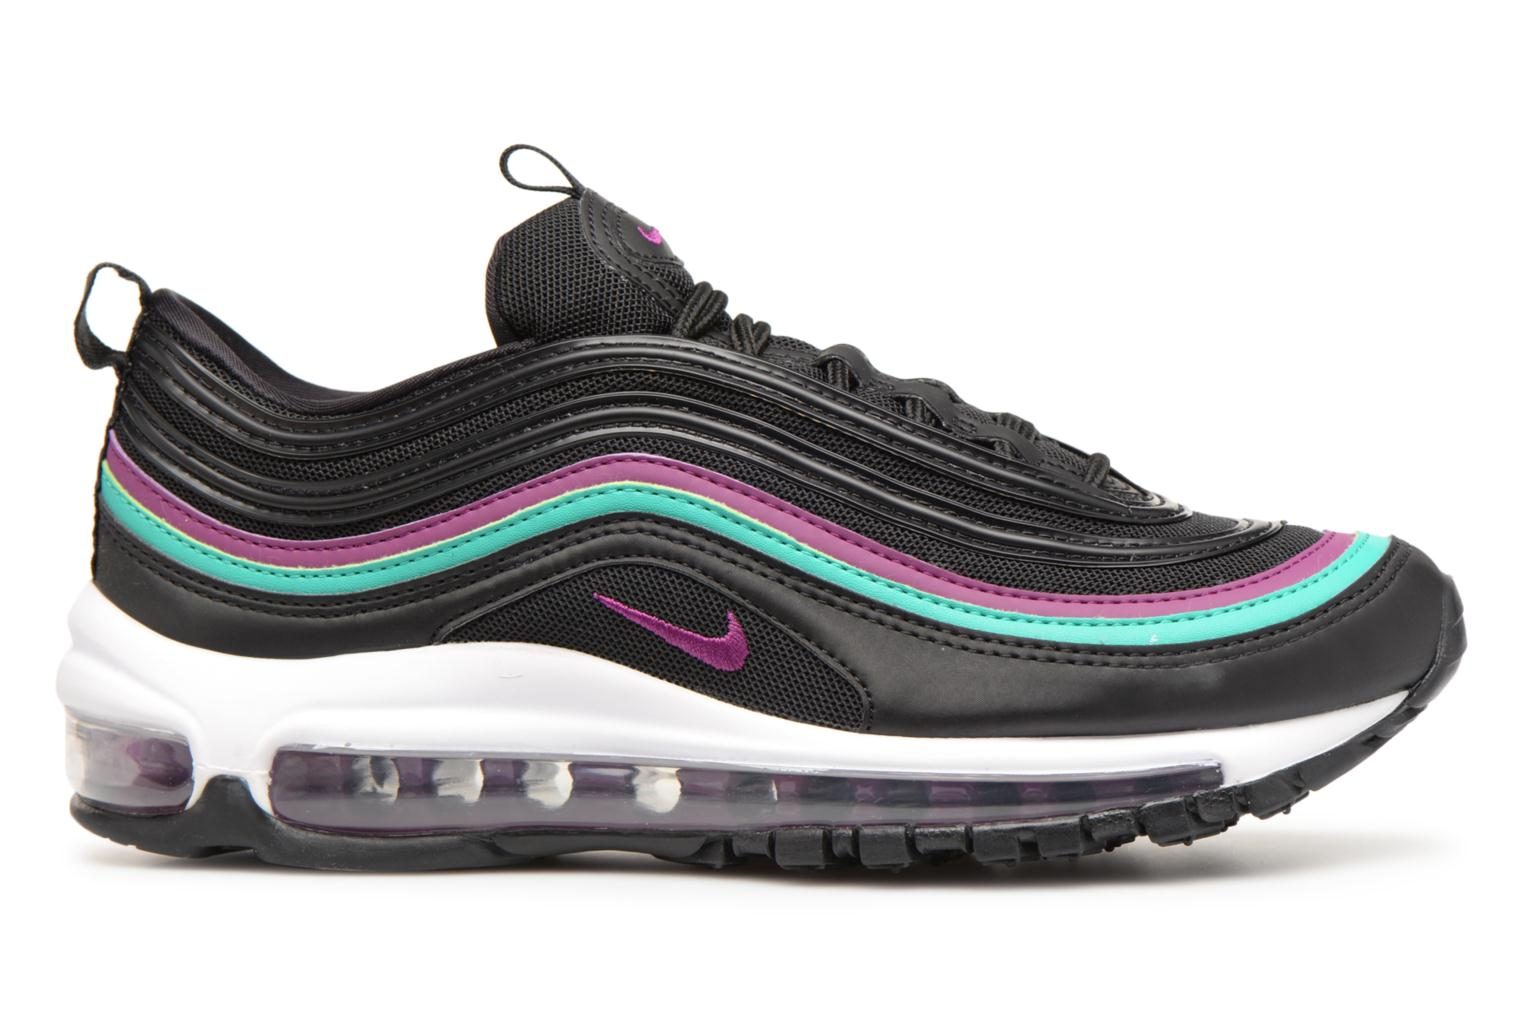 Air Grape Emerald Black Black Clear Bright 97 W Max Nike Za45HF